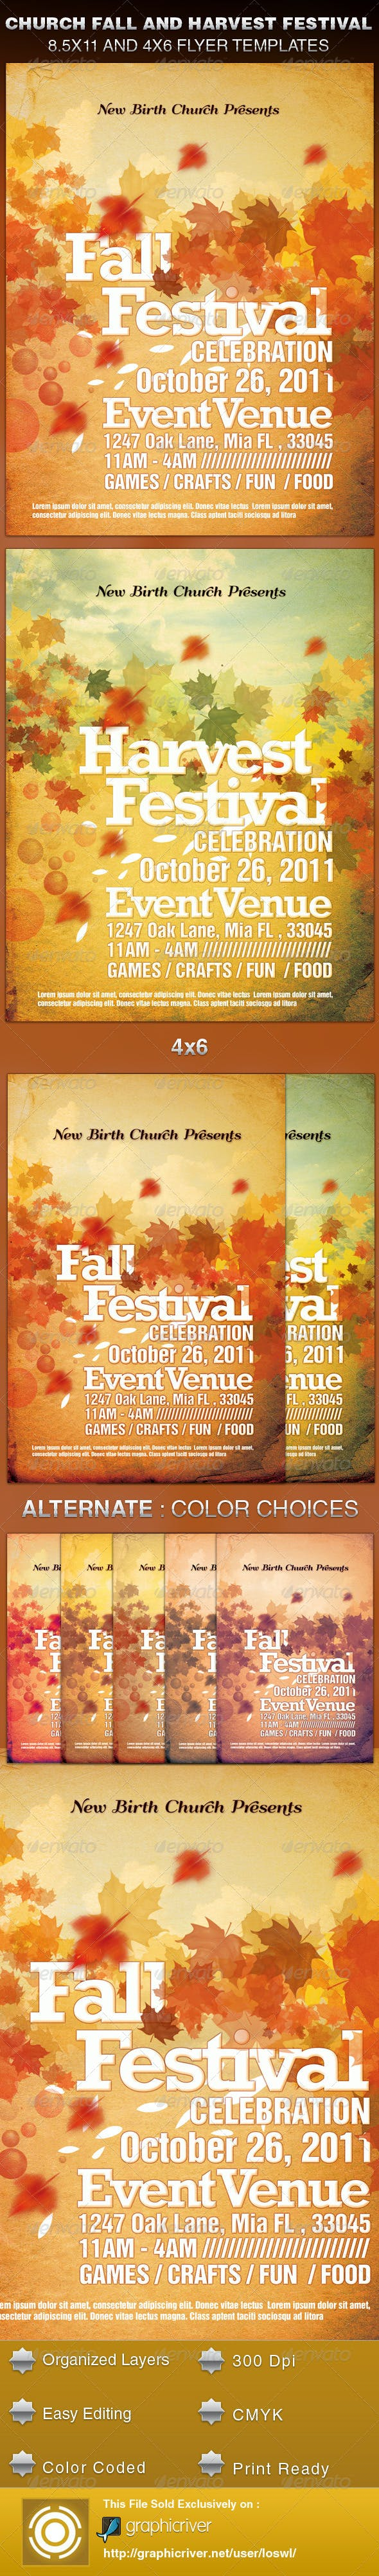 church fall and harvest festival template by loswl graphicriver